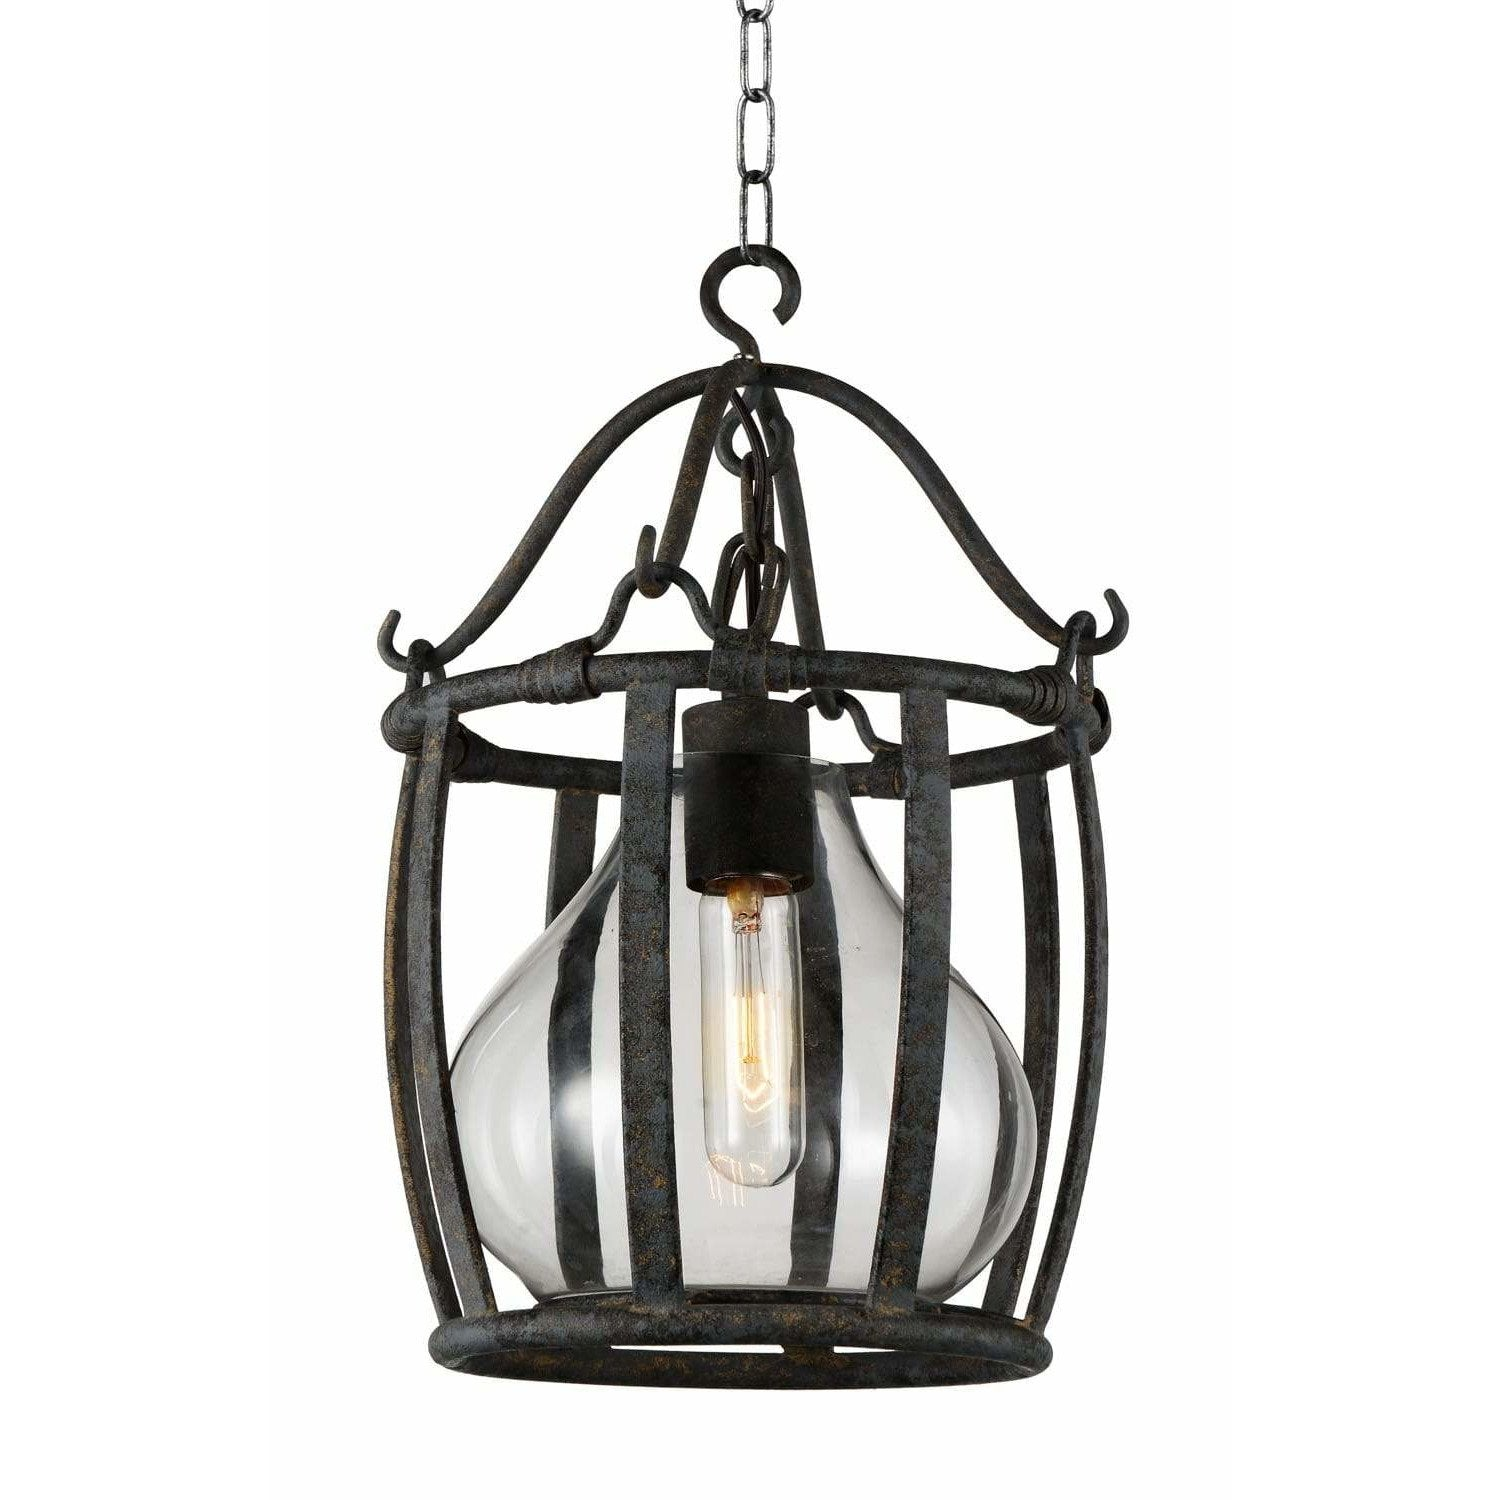 CWI Lighting Pendants Antique Black Imperial 1 Light Down Pendant with Antique Black finish by CWI Lighting 9925P16-1-216